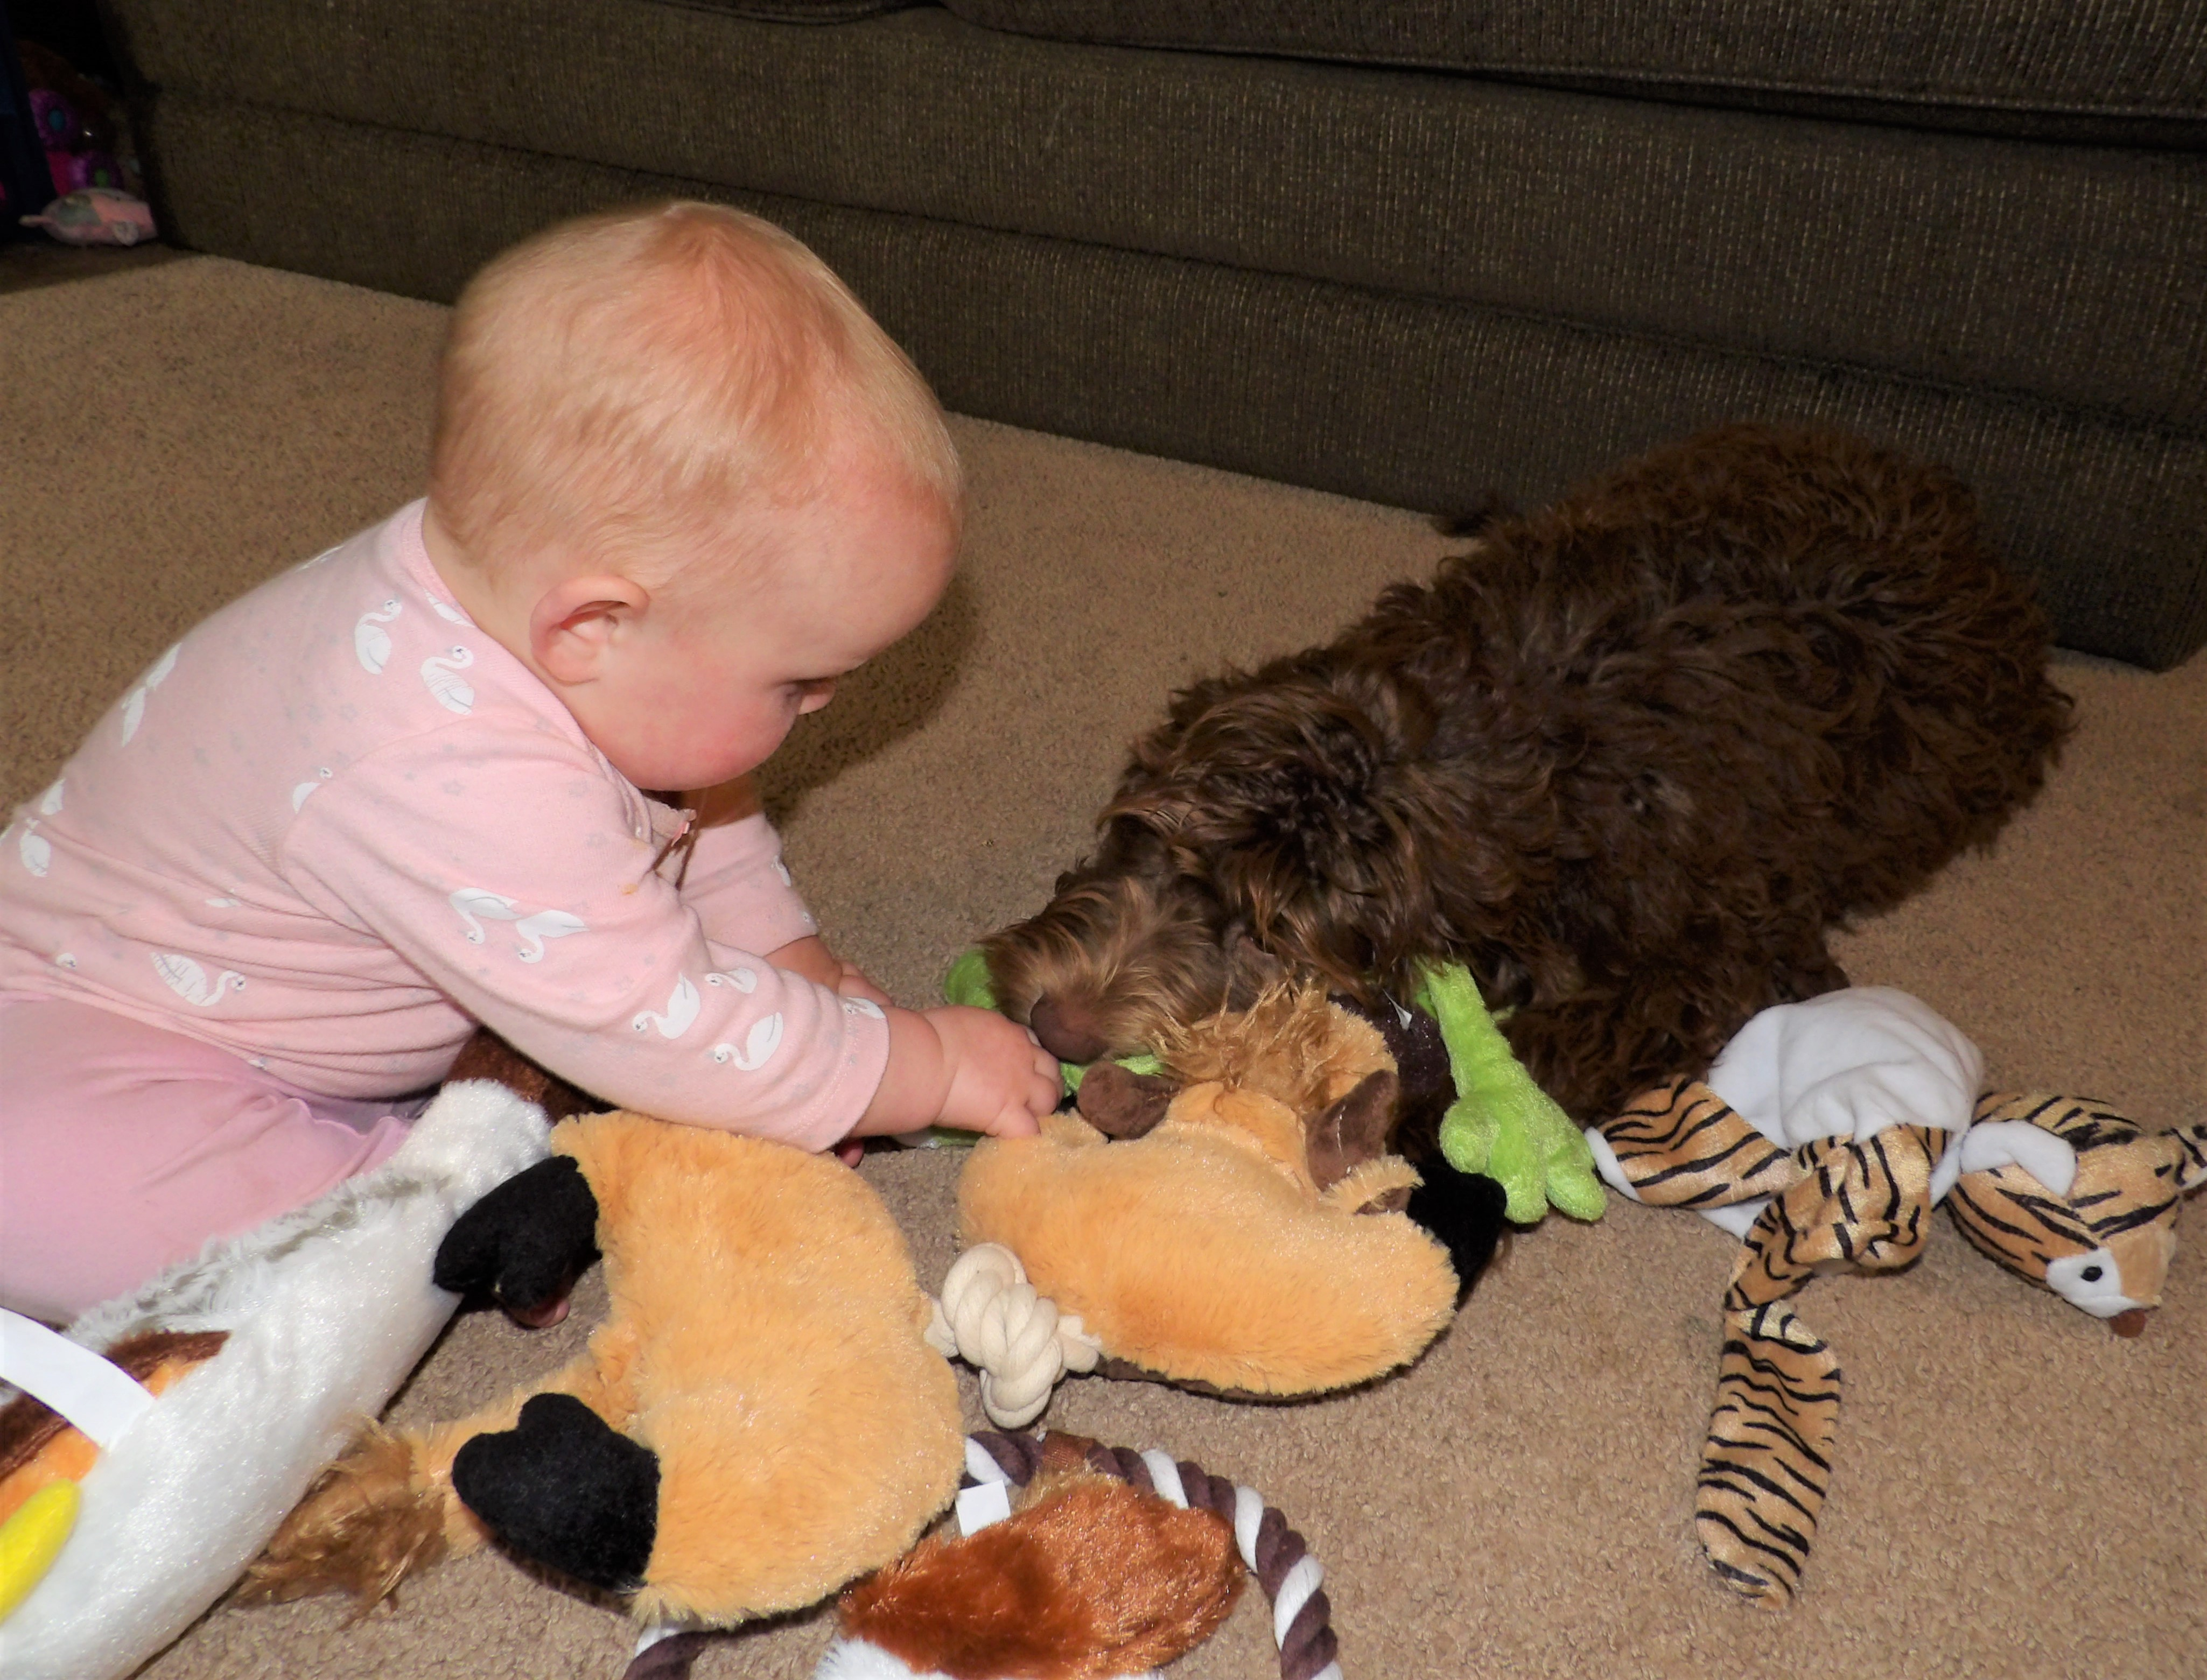 Gently sharing with baby